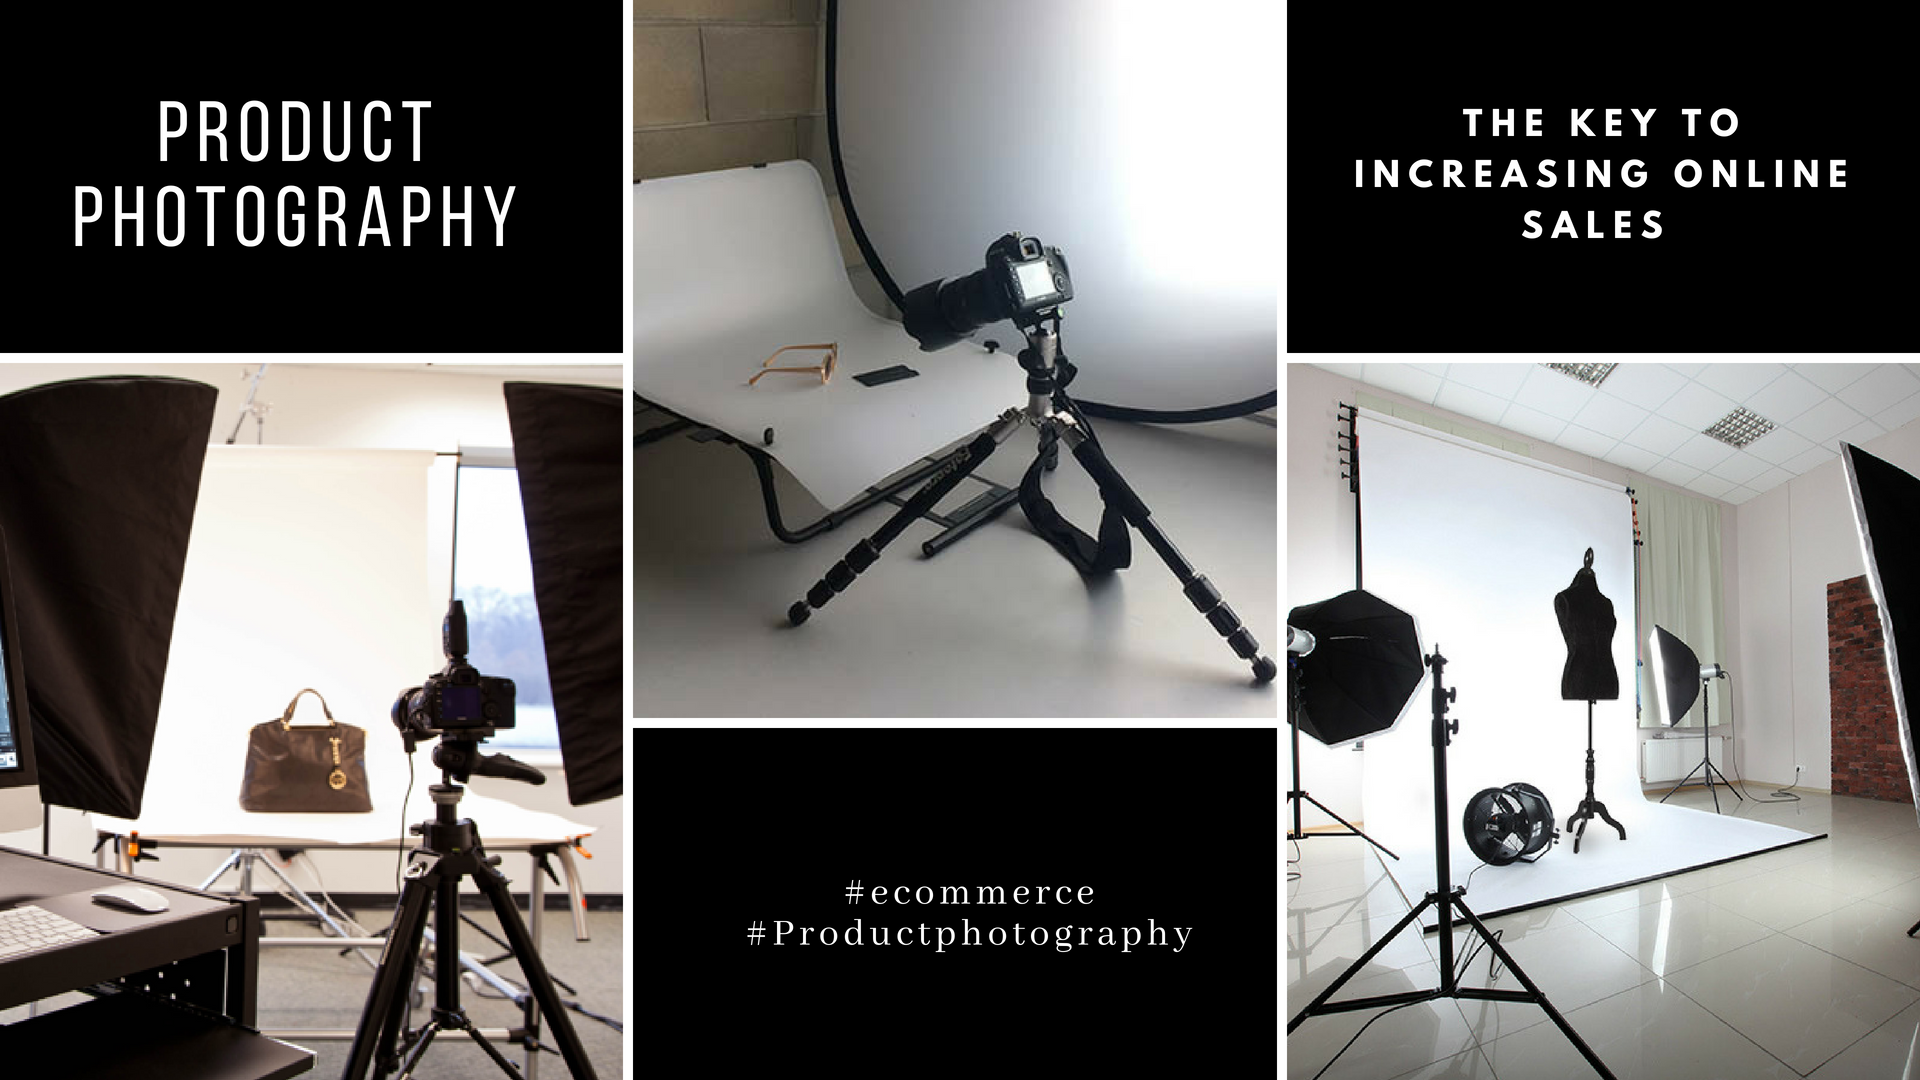 Product Photography - The key to Increasing online sales